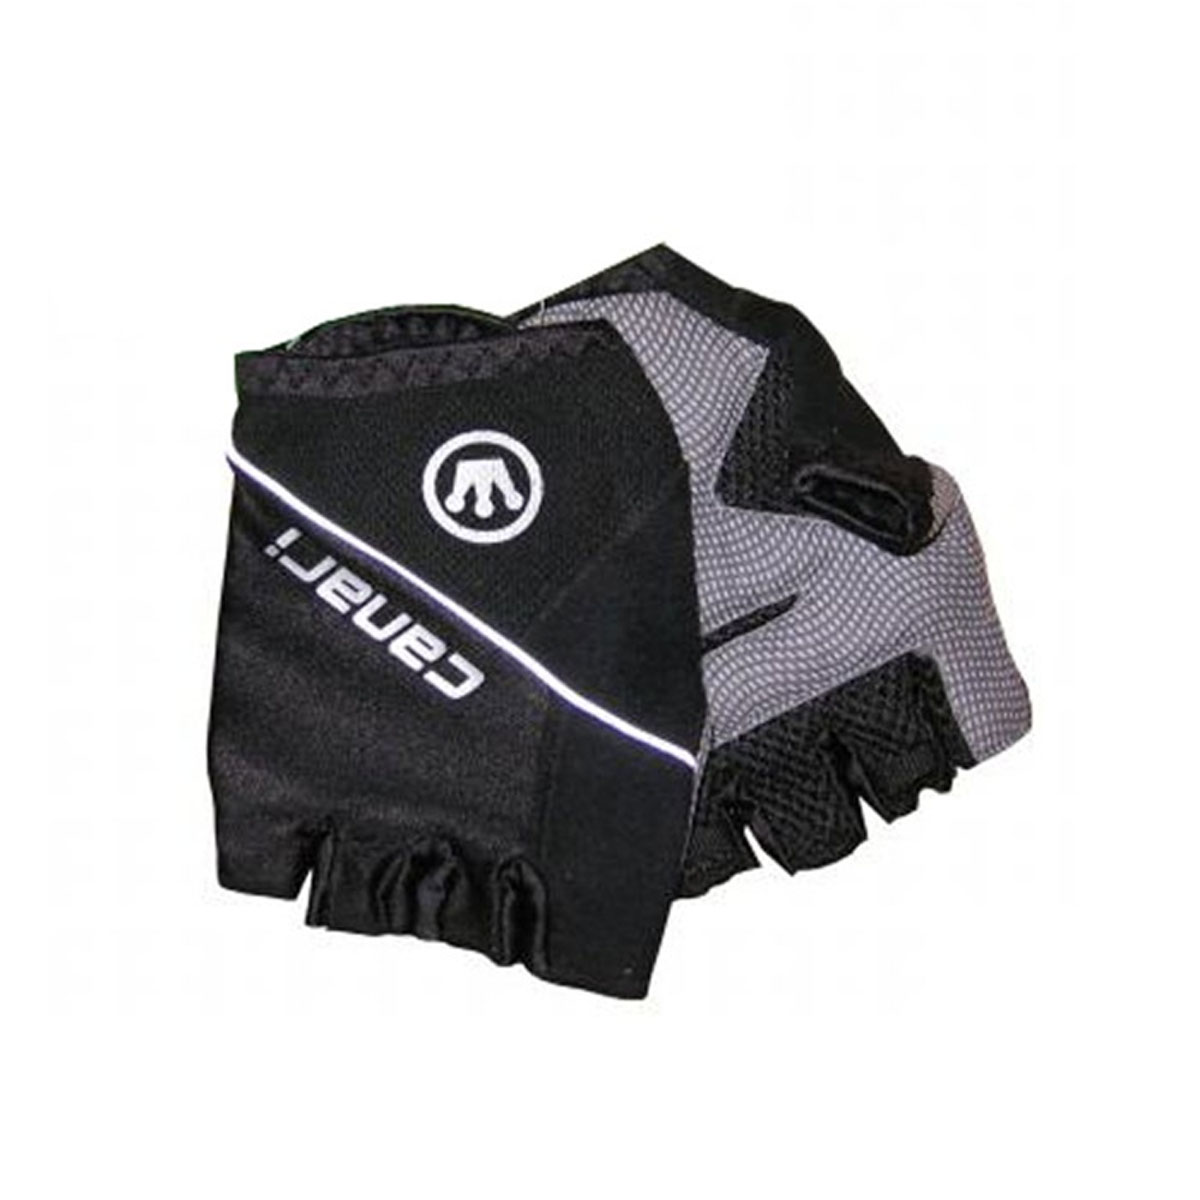 Canari Cyclewear Men's Fusion Short Finger Cycling Gloves - 7020